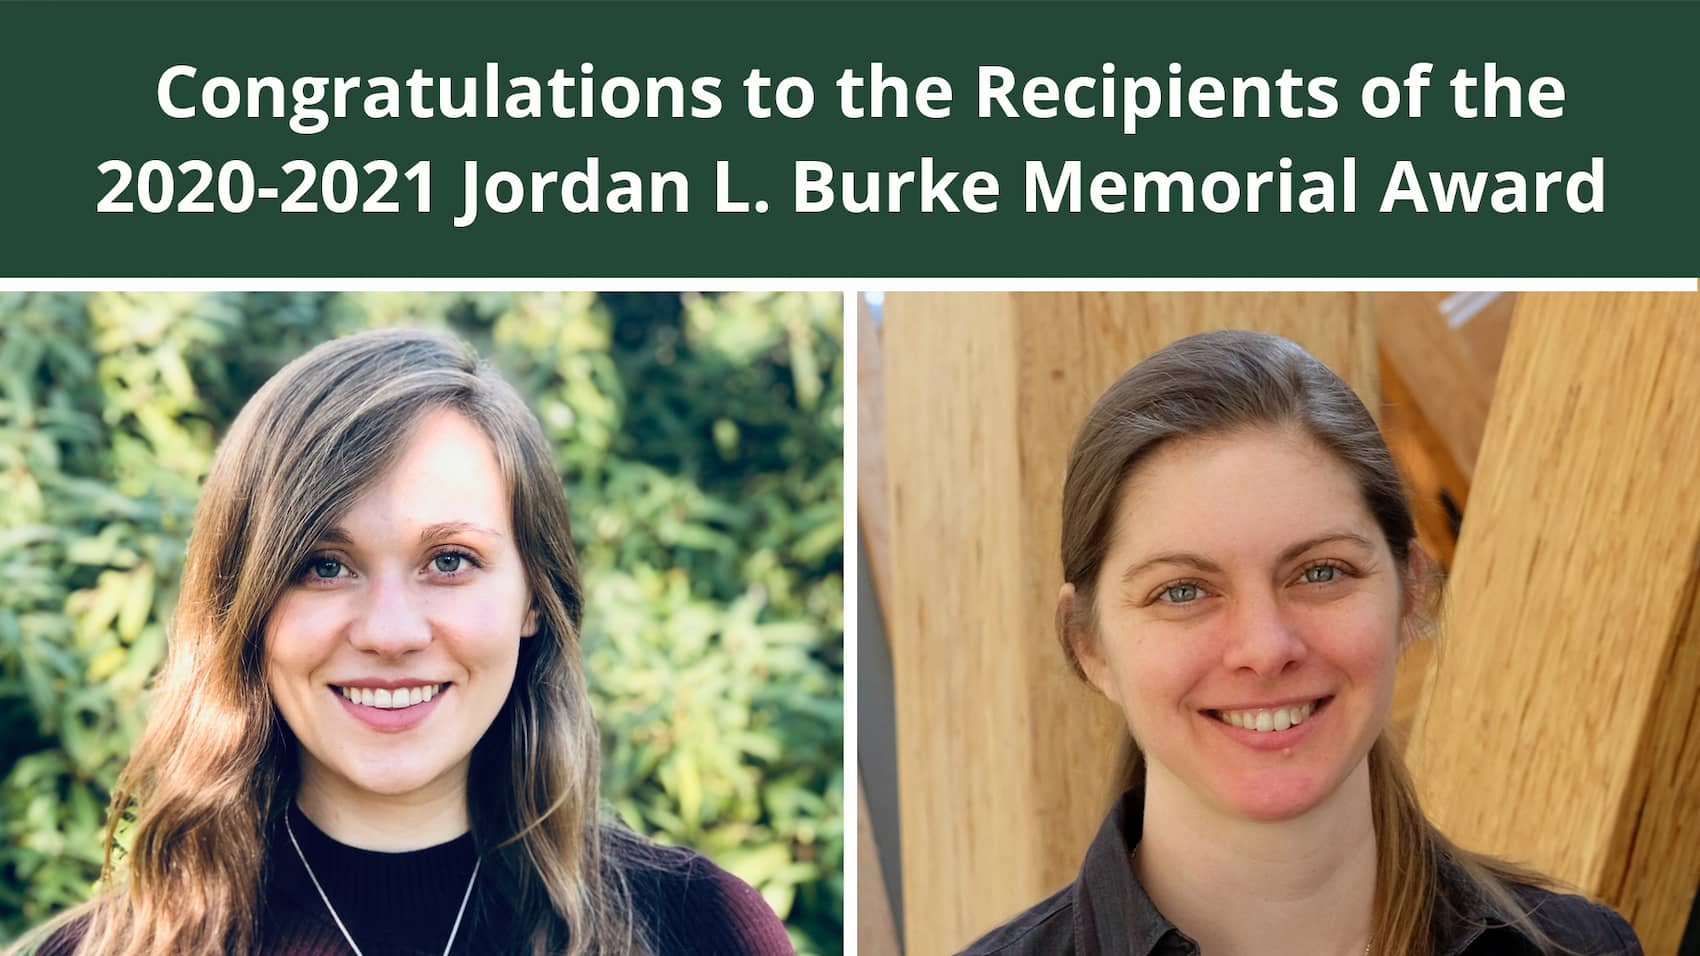 Congratulations to the recipients of 2020/21 Jordan L. Burke Memorial Award in Forestry